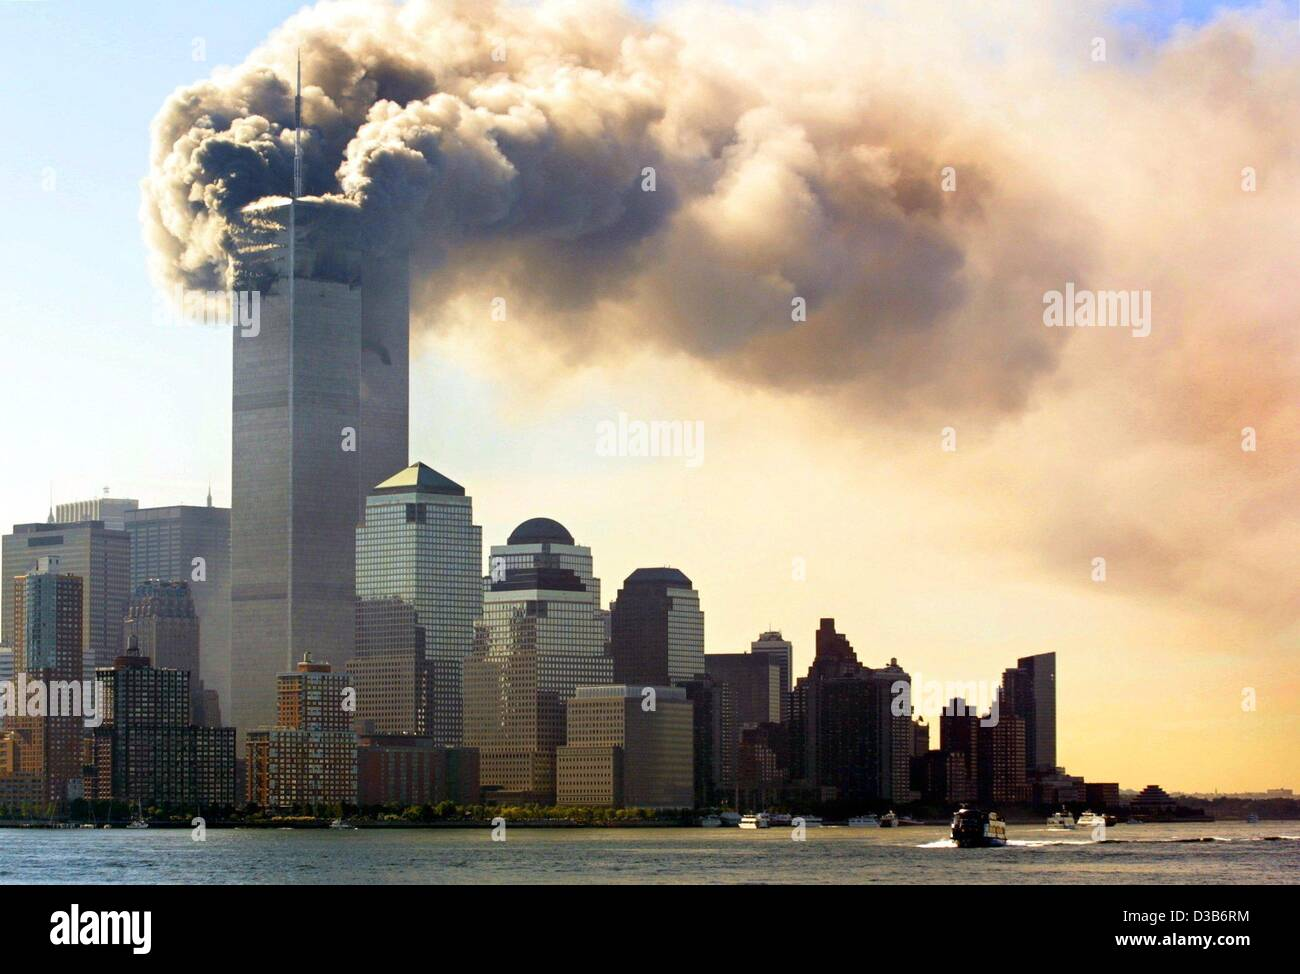 (dpa) - Clouds of smoke rise from the burning upper floors just before the twin towers of the World Trade Center Stock Foto